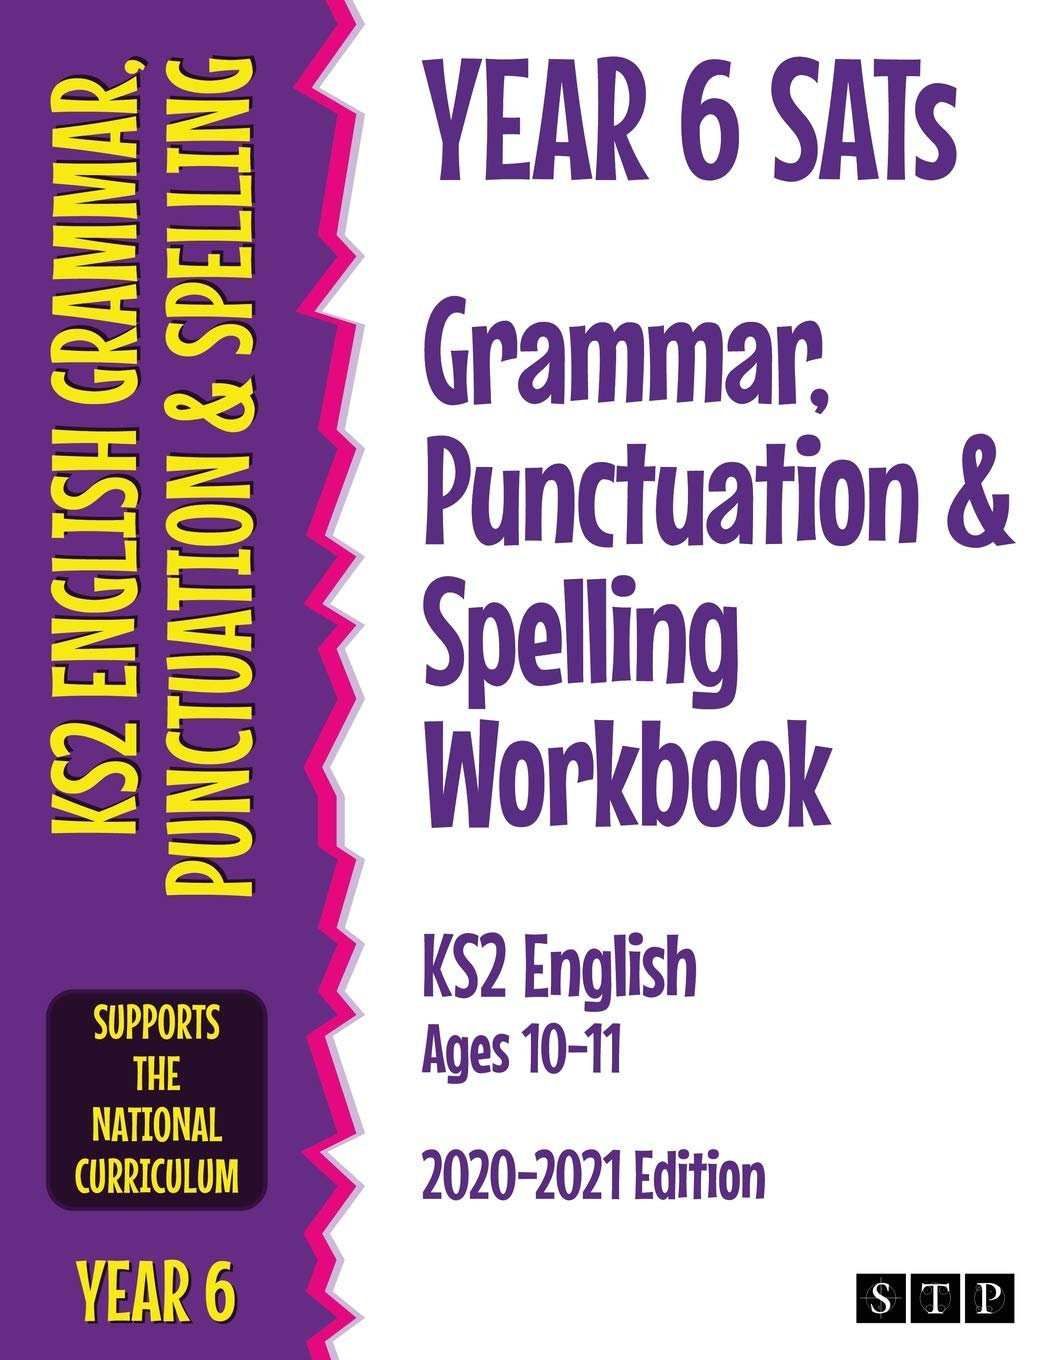 Year 6 SATs Grammar, Punctuation and Spelling Workbook KS2 English Ages 10-11: 2020-2021 Edition